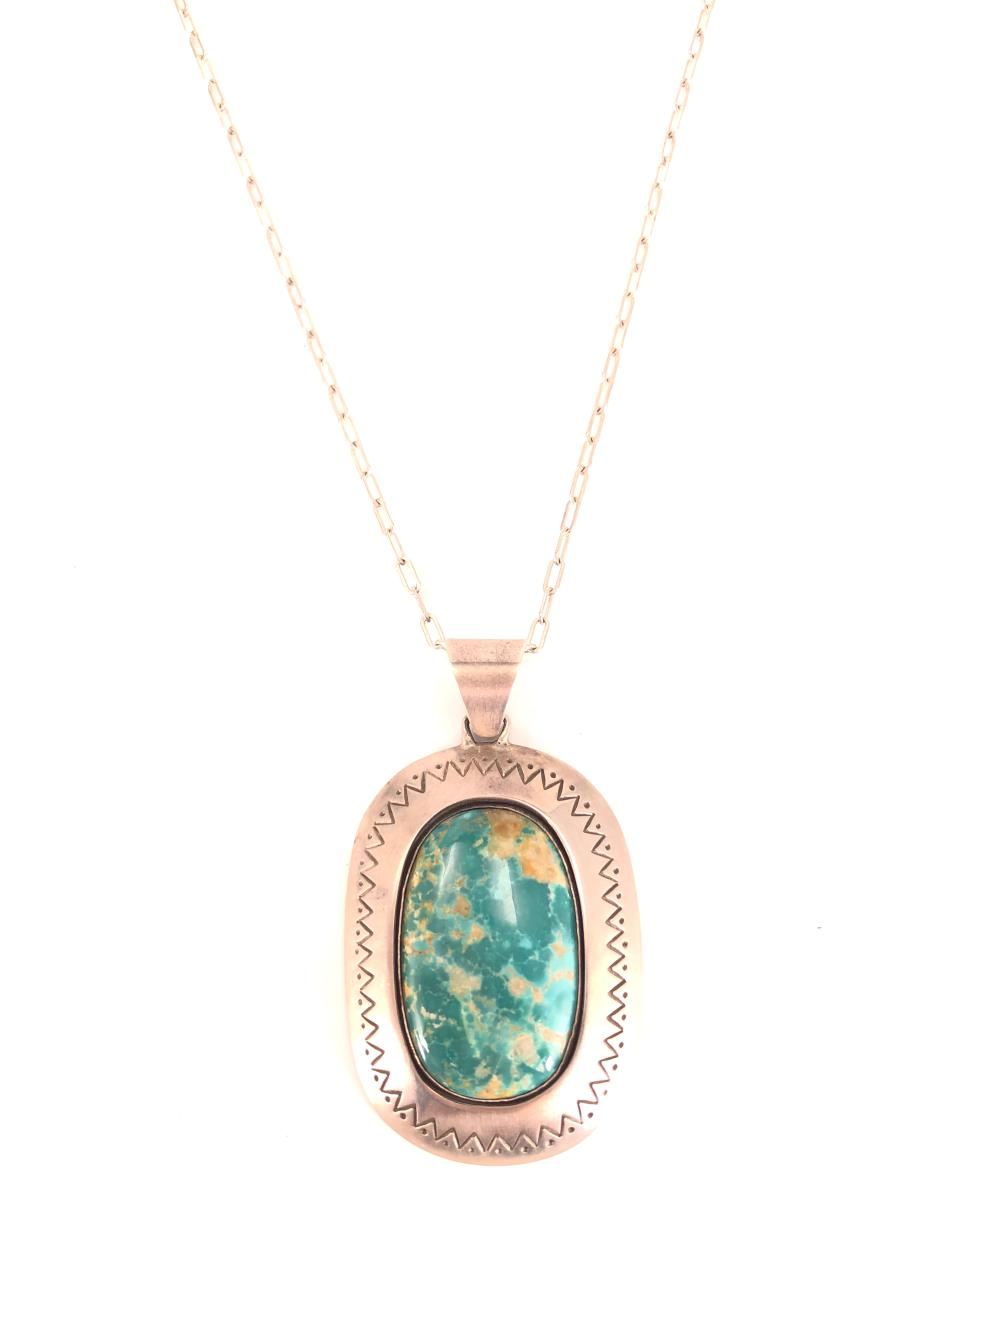 LARGE Native American M Slim Artist Signed Sterling Silver and Turquoise Pendant w/ Necklace